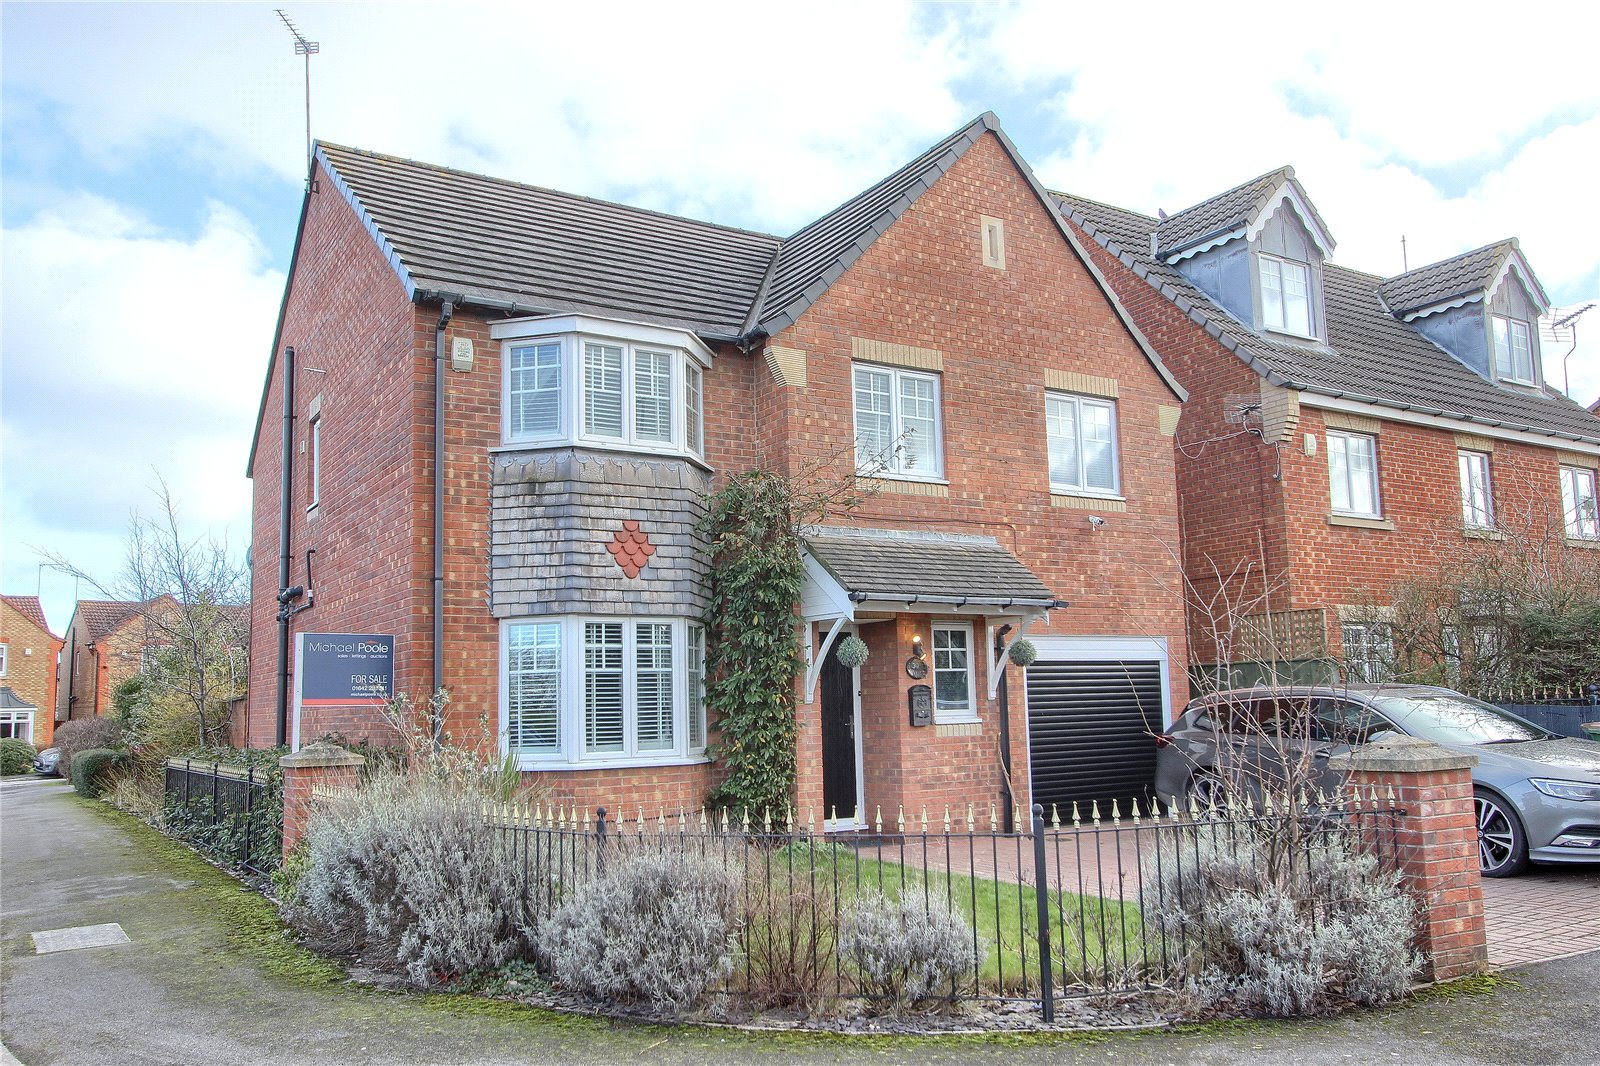 4 bed house for sale in Talisker Gardens, Redcar  - Property Image 1